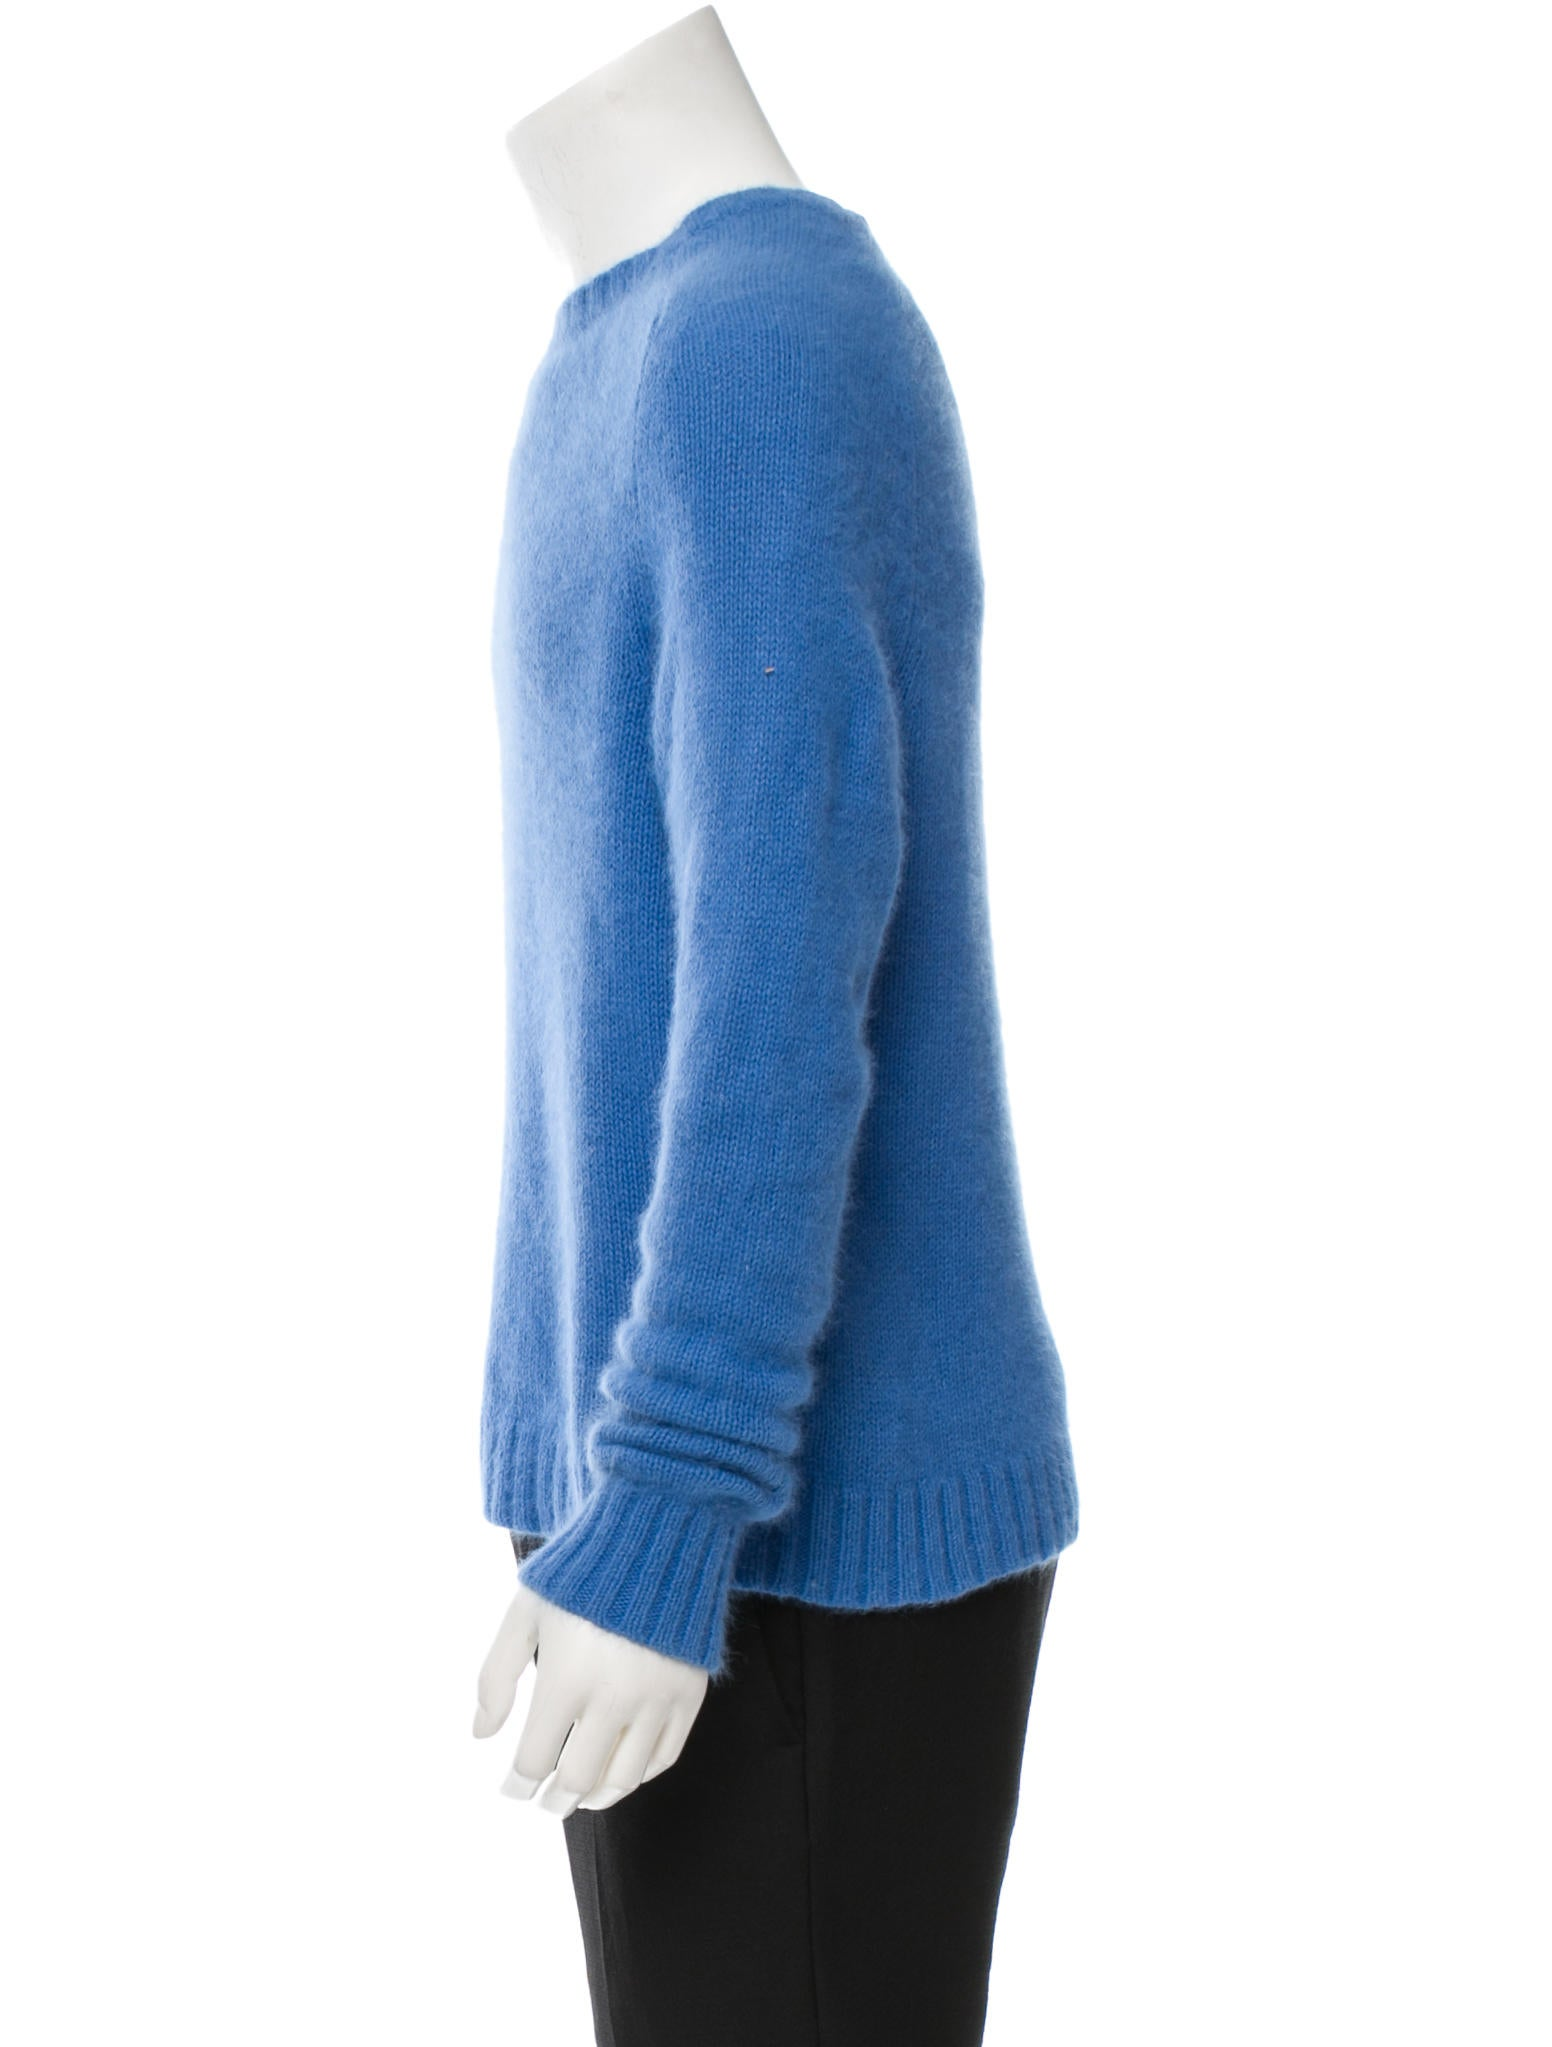 Find angora sweater at Macy's Macy's Presents: The Edit - A curated mix of fashion and inspiration Check It Out Free Shipping with $75 purchase + Free Store Pickup.